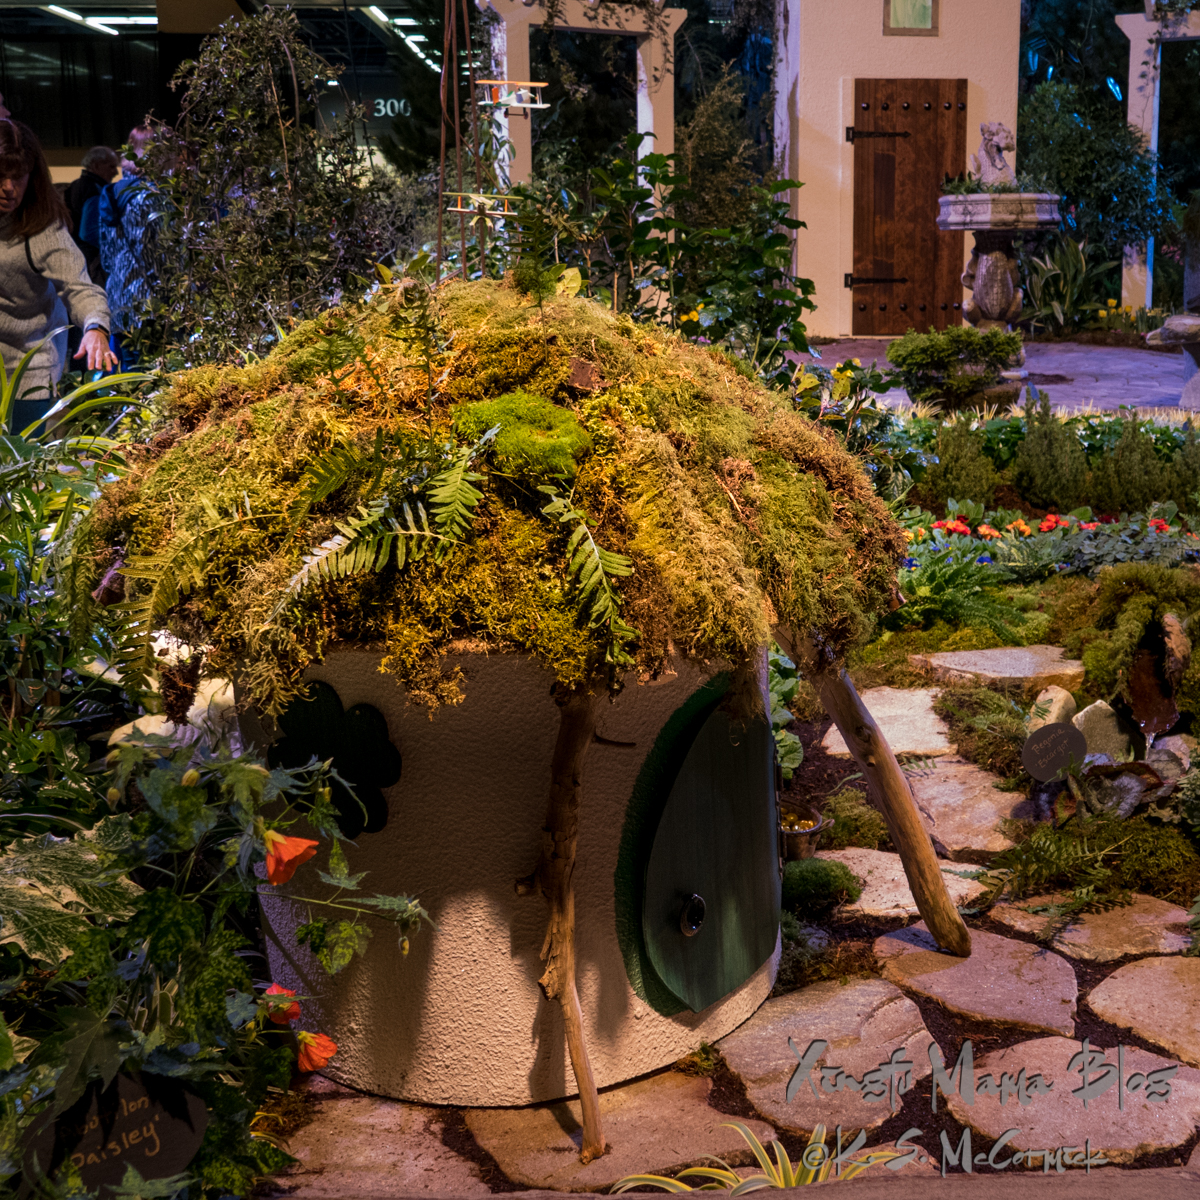 Mini house in the Celtic Garden at the Northwest Flower and Garden Festival.